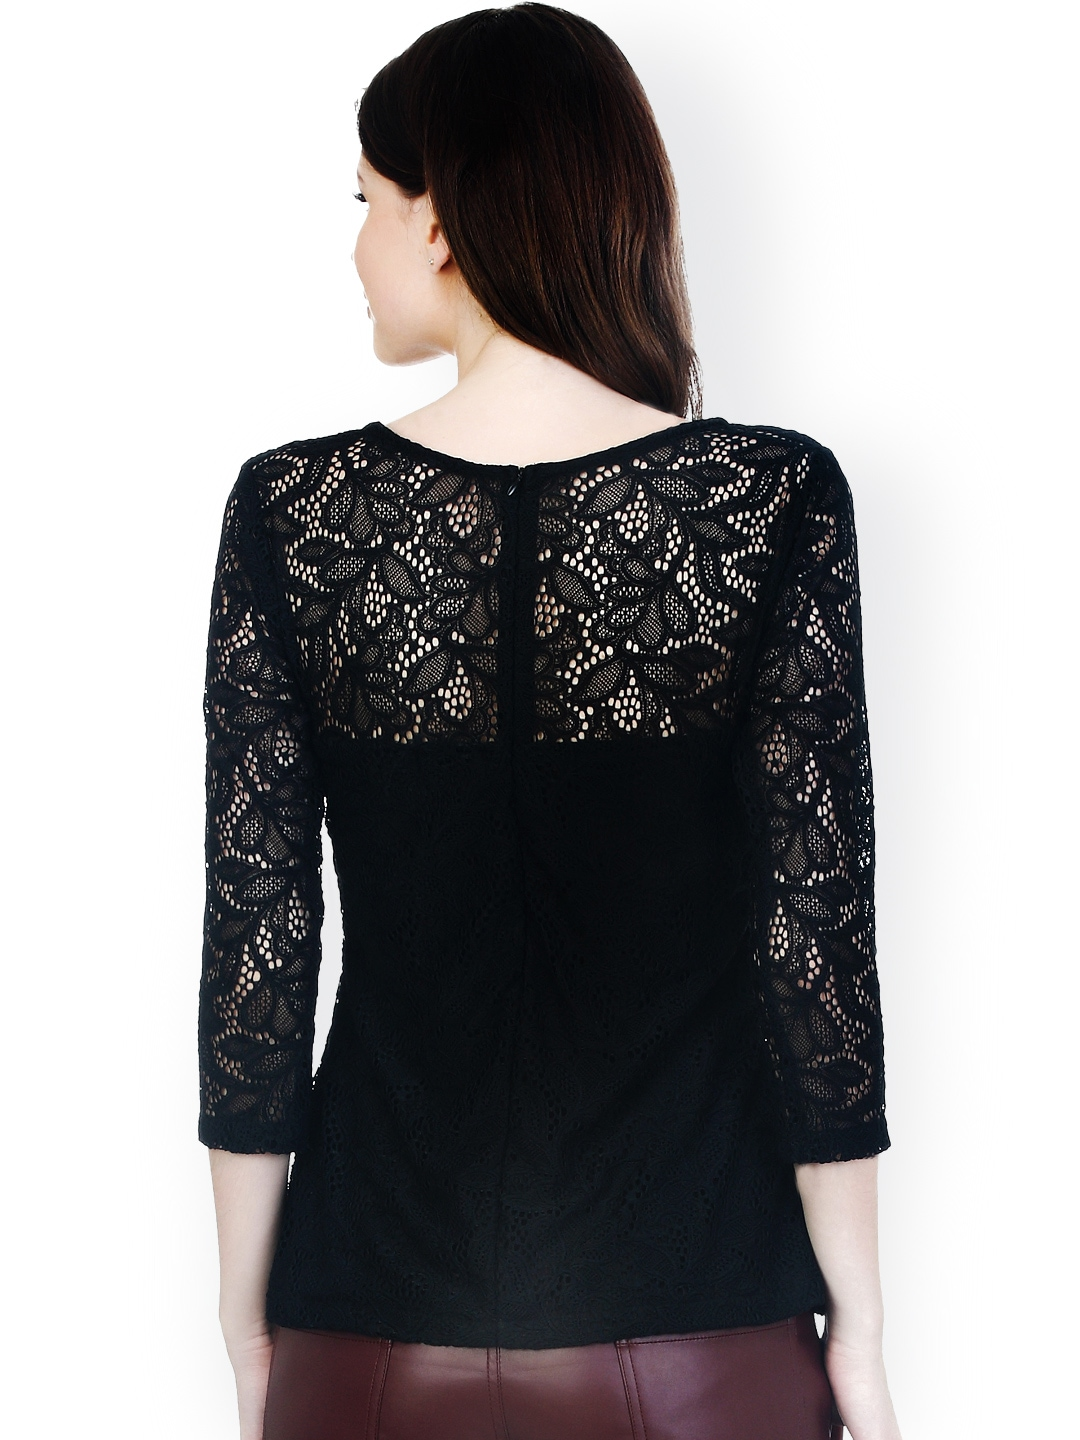 FREE Shipping & FREE Returns on Black Lace Top at Bloomingdale's. Shop now! Pick Up in Store Available.